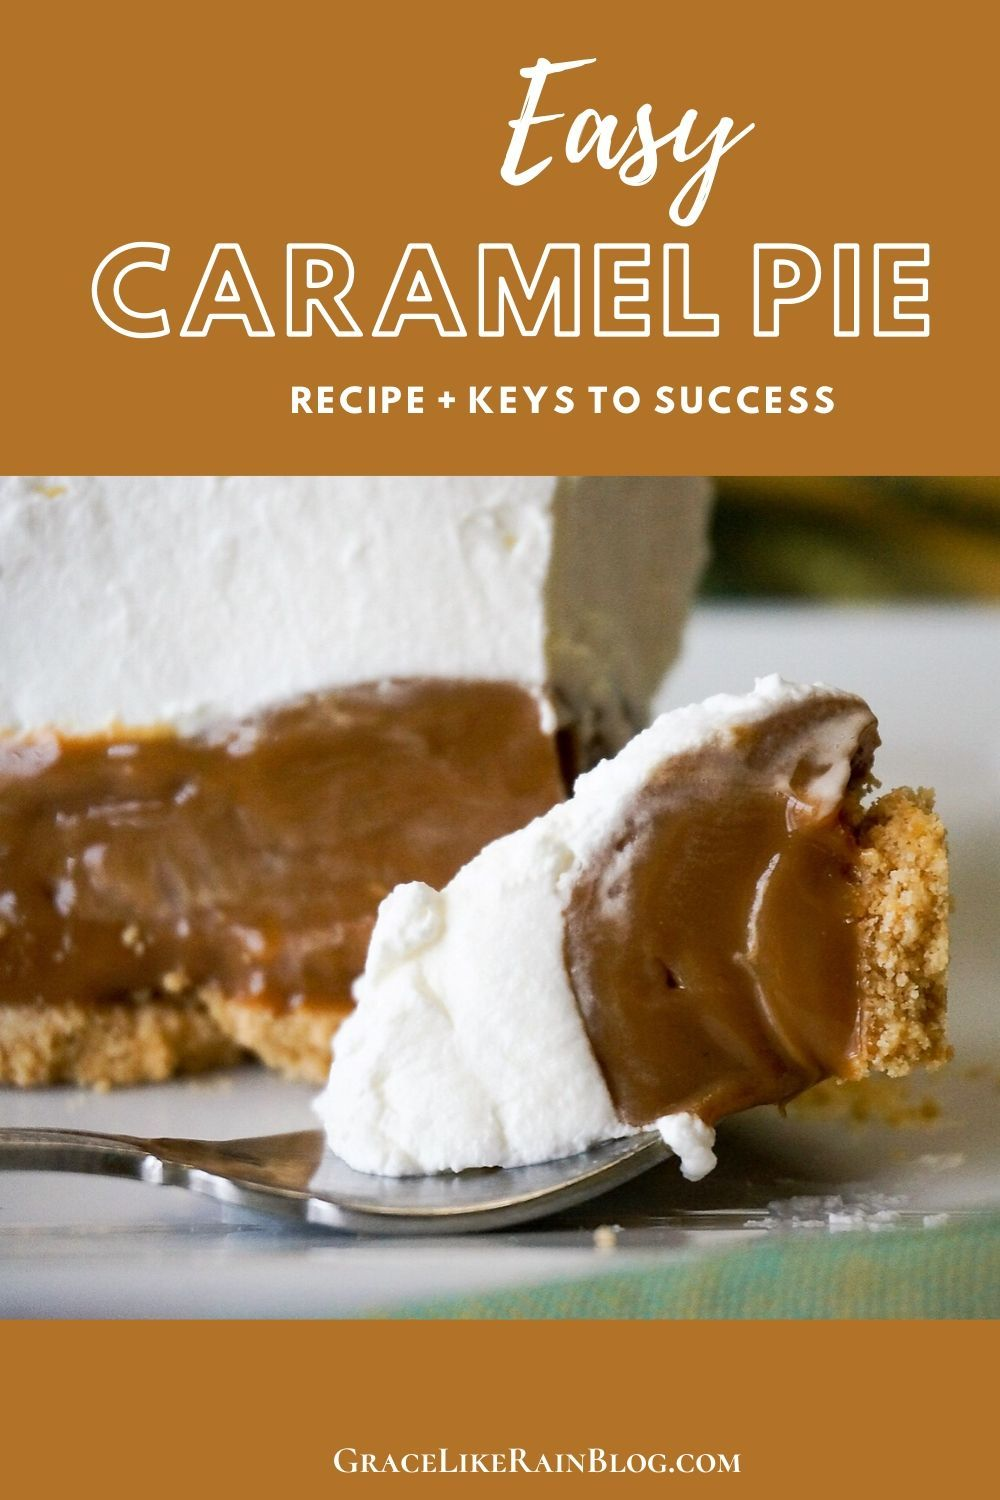 Magic Caramel Pie Recipe In 2020 Caramel Pie Easy Caramel Pie Recipe Unique Pie Recipes